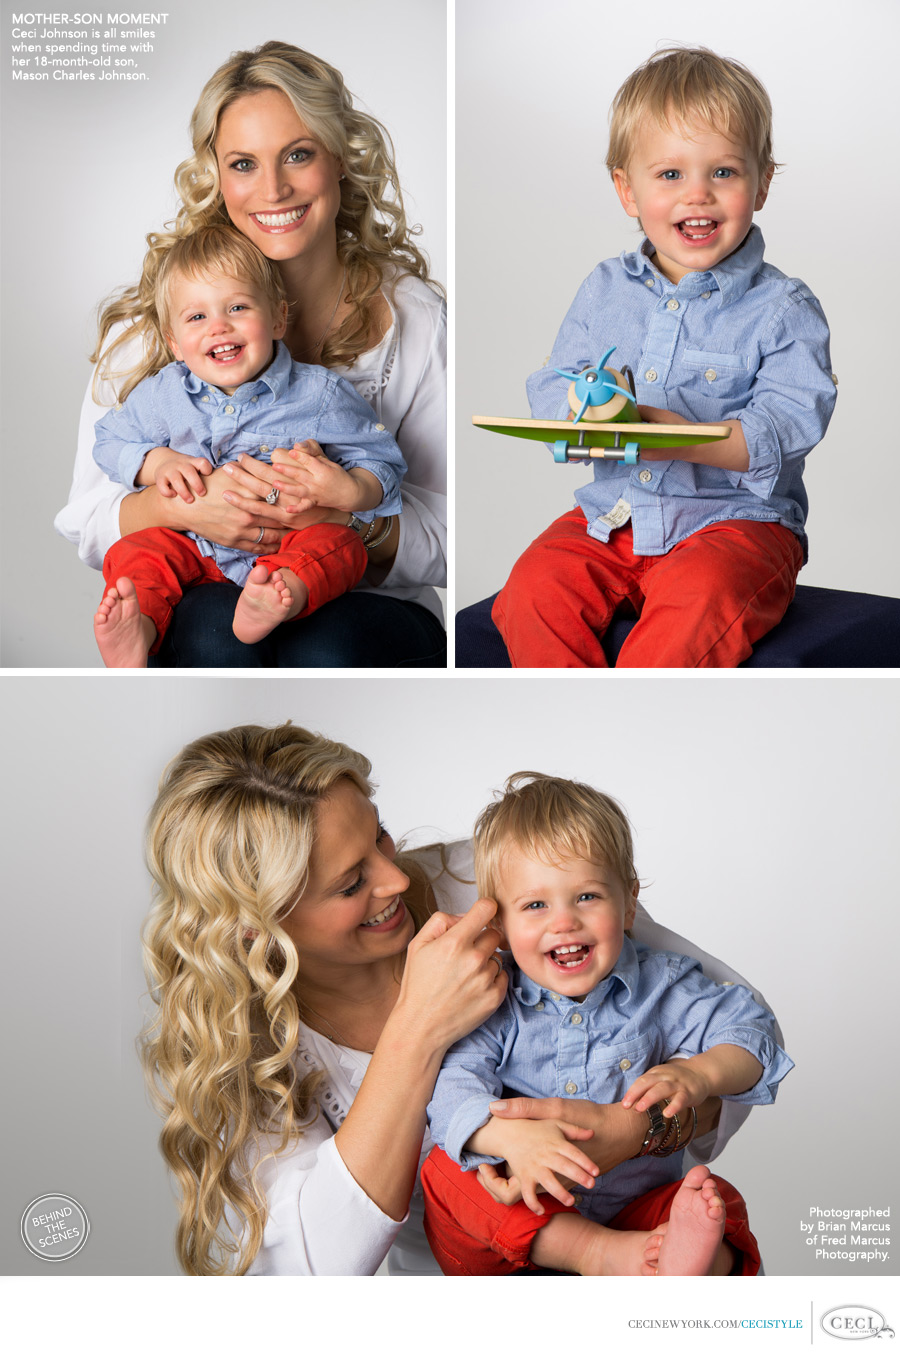 Ceci Johnson of Ceci New York - MOTHER-SON MOVEMENT - Ceci Johnson is all smiles when spending time with her 18-month-old son Mason Charles Johnson. Shot by Brian Marcus of Fred Marcus Photography.